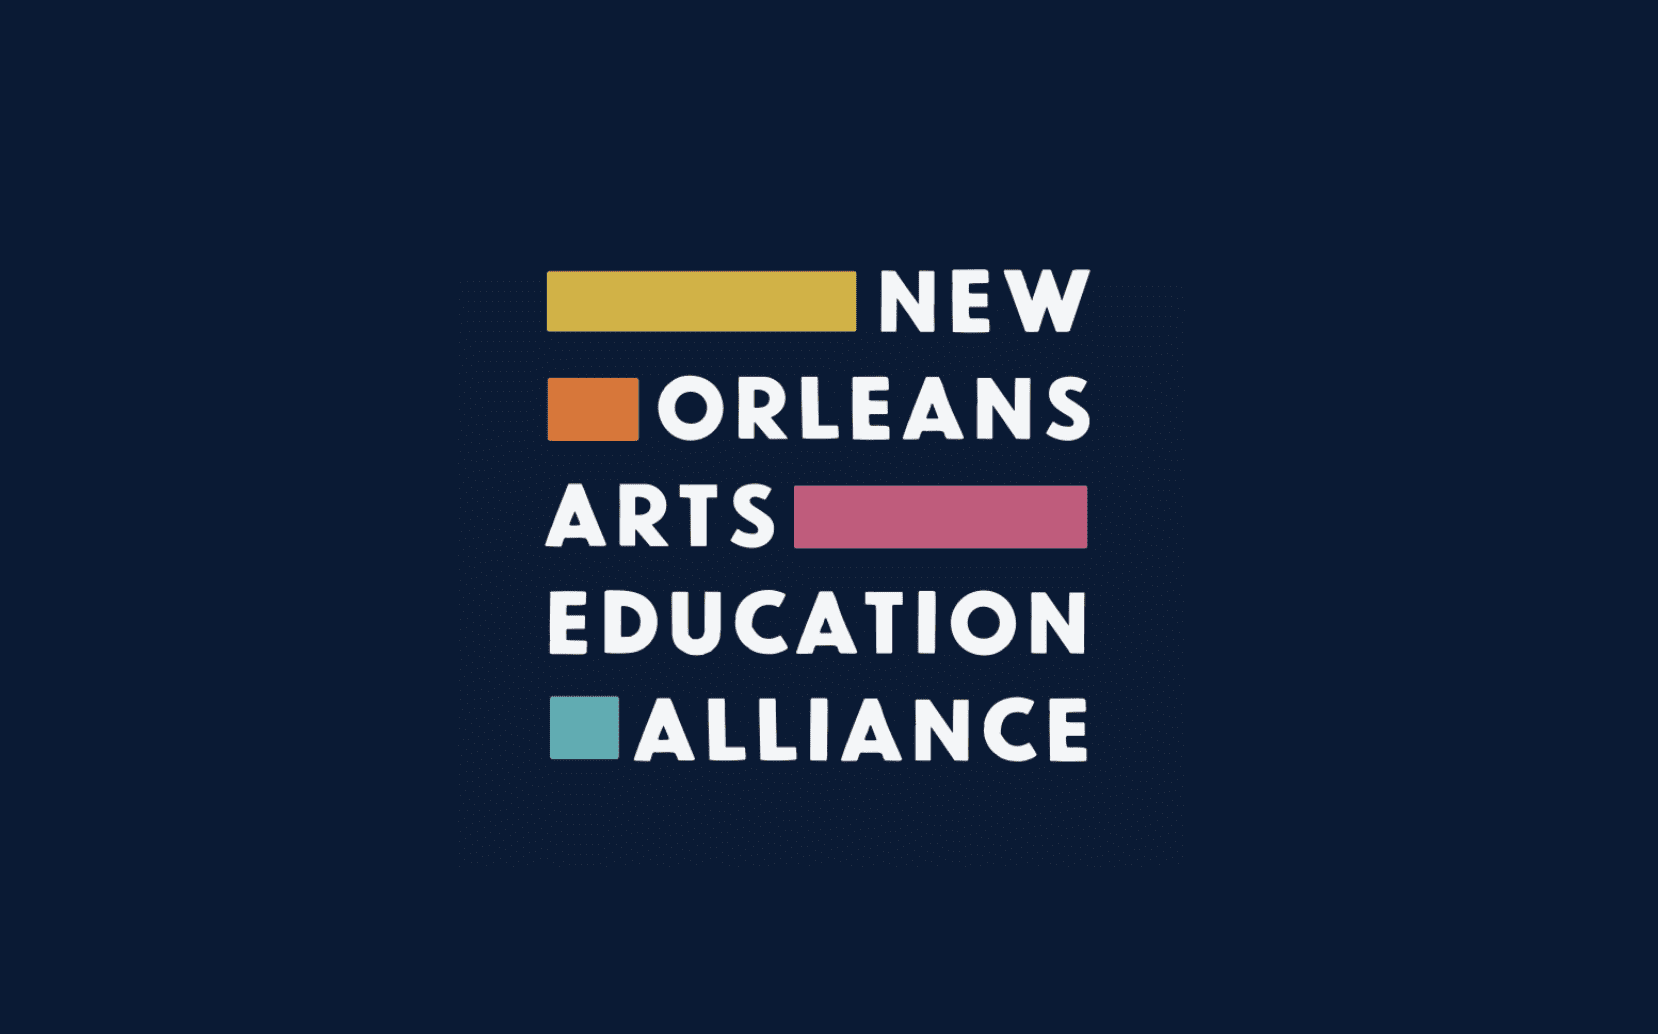 New Orleans Arts Education Alliance blue yellow orange and pink logo